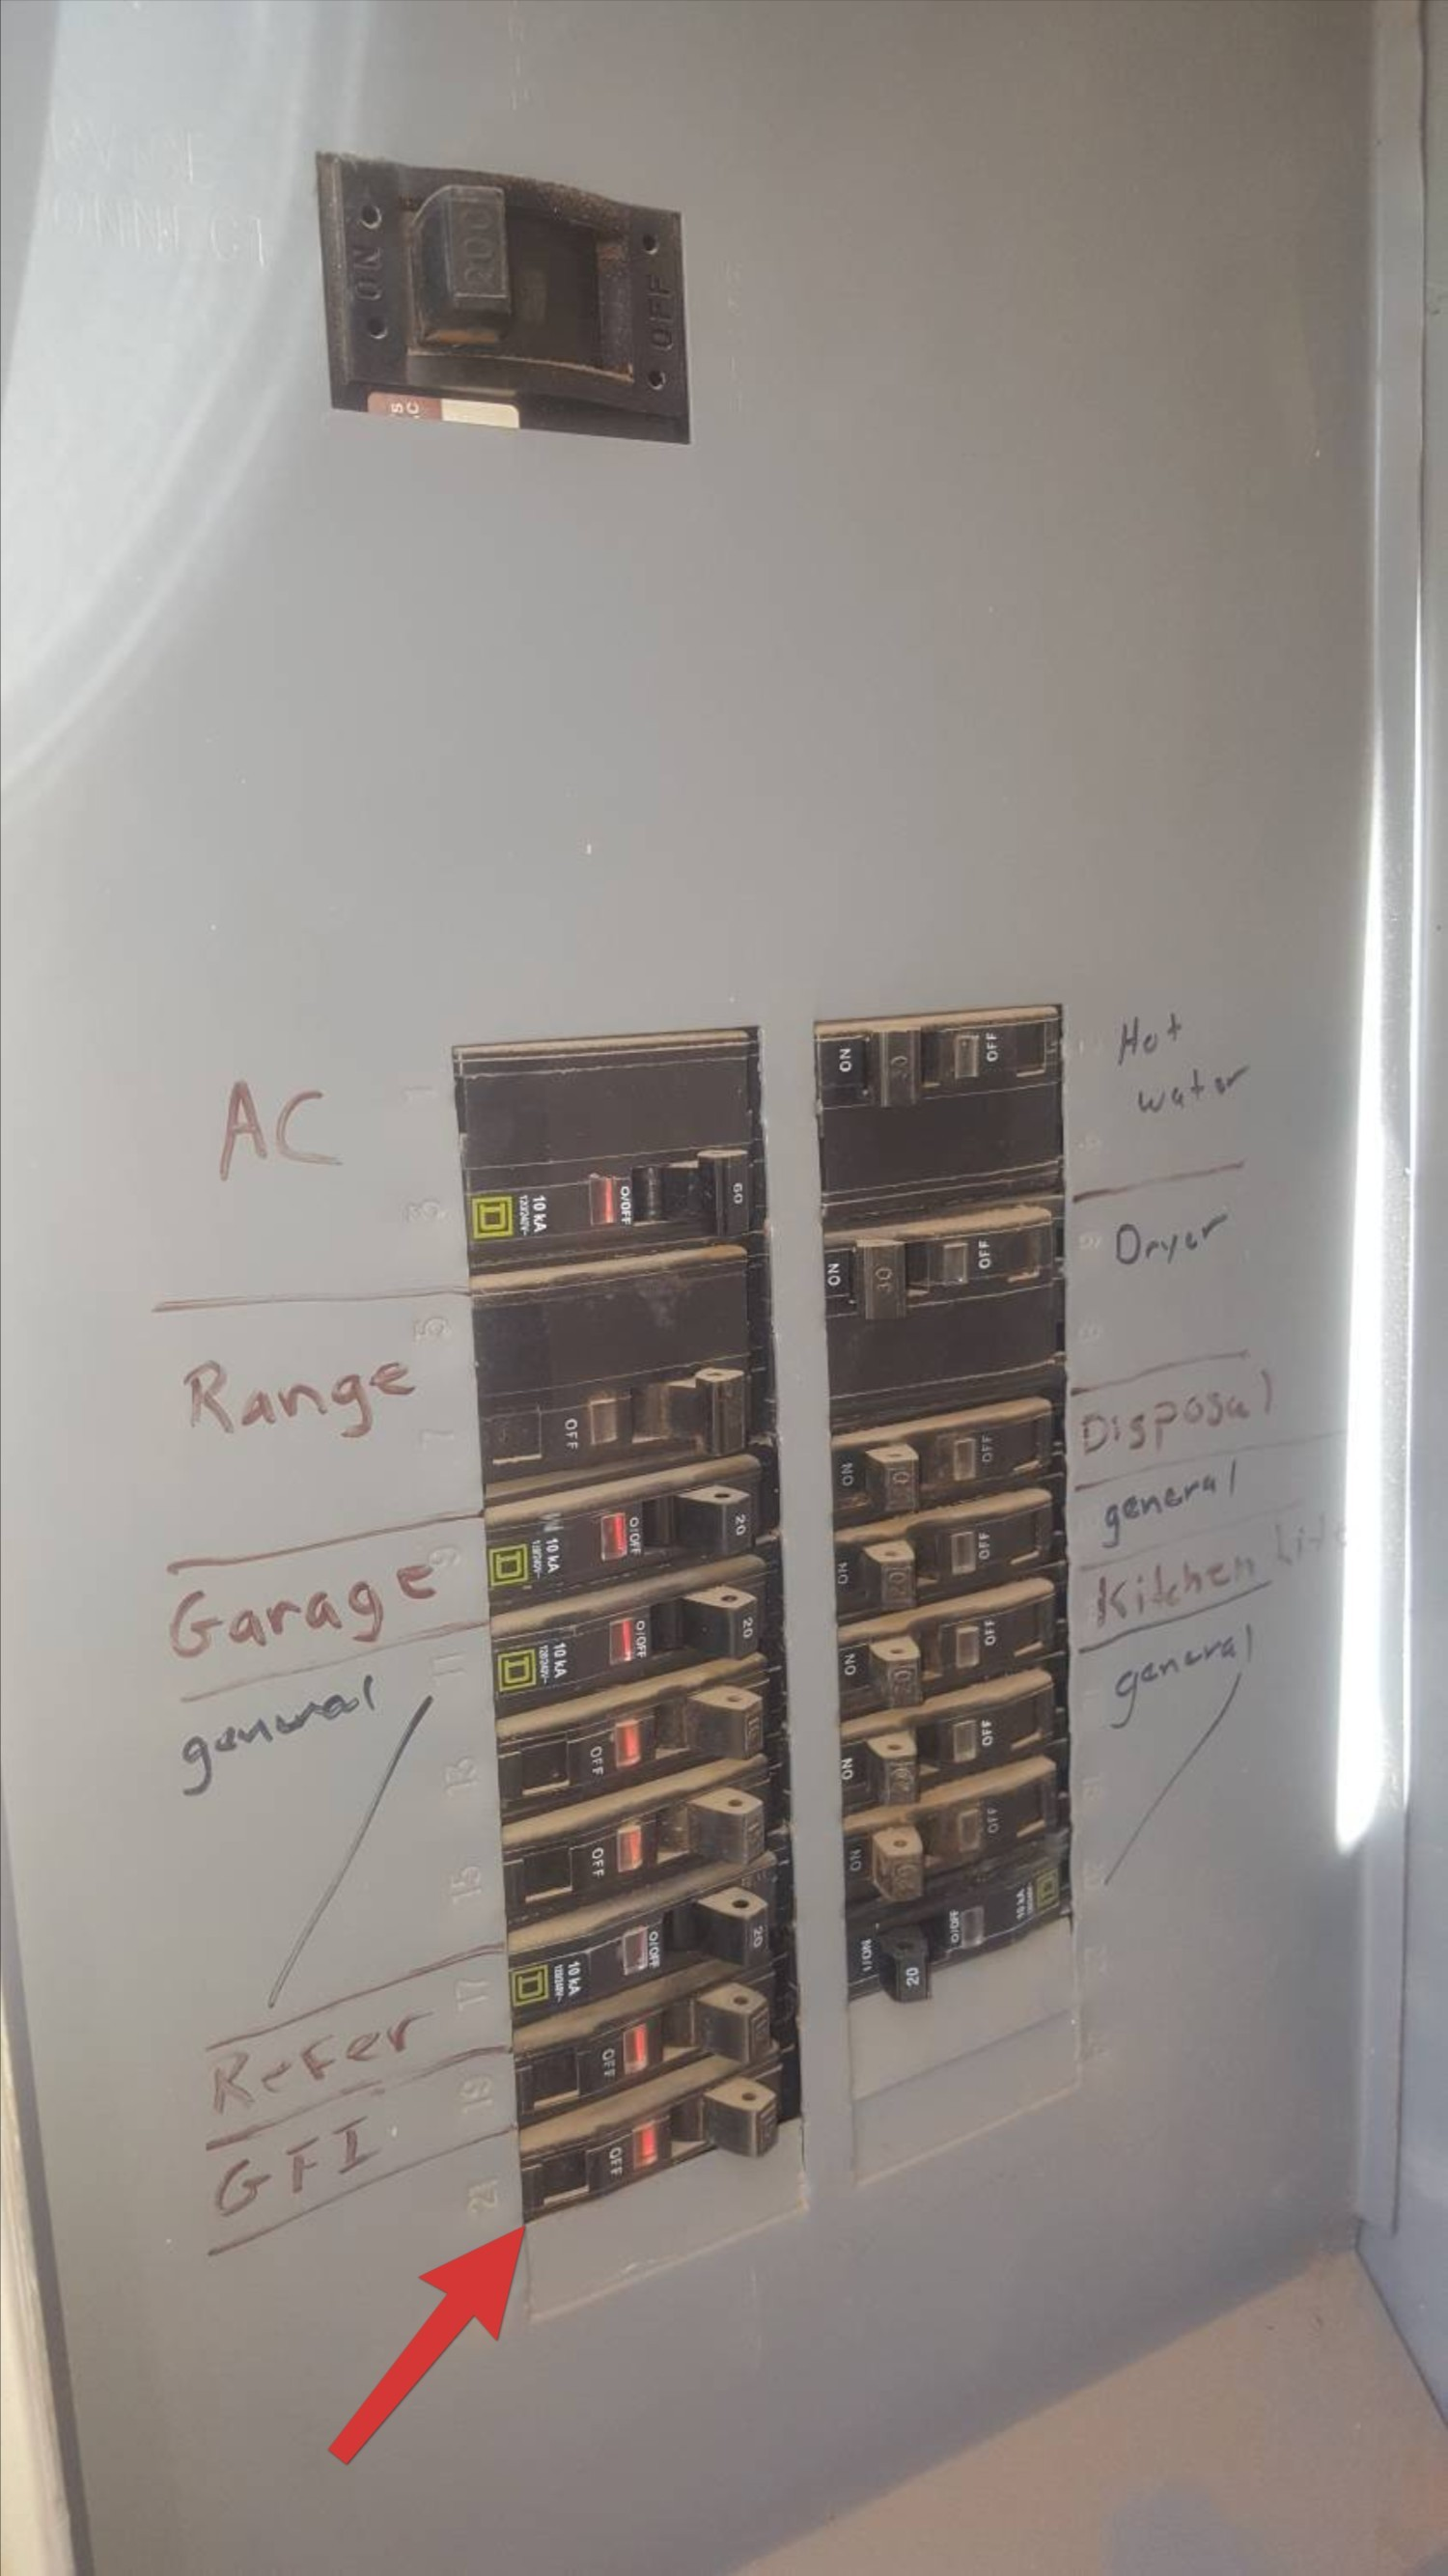 Sample Report The Dwelling Inspector Claims 60 We Claim 1 An Arc Fault Circuit Interrupter Afci Device Breaker Not Labeled